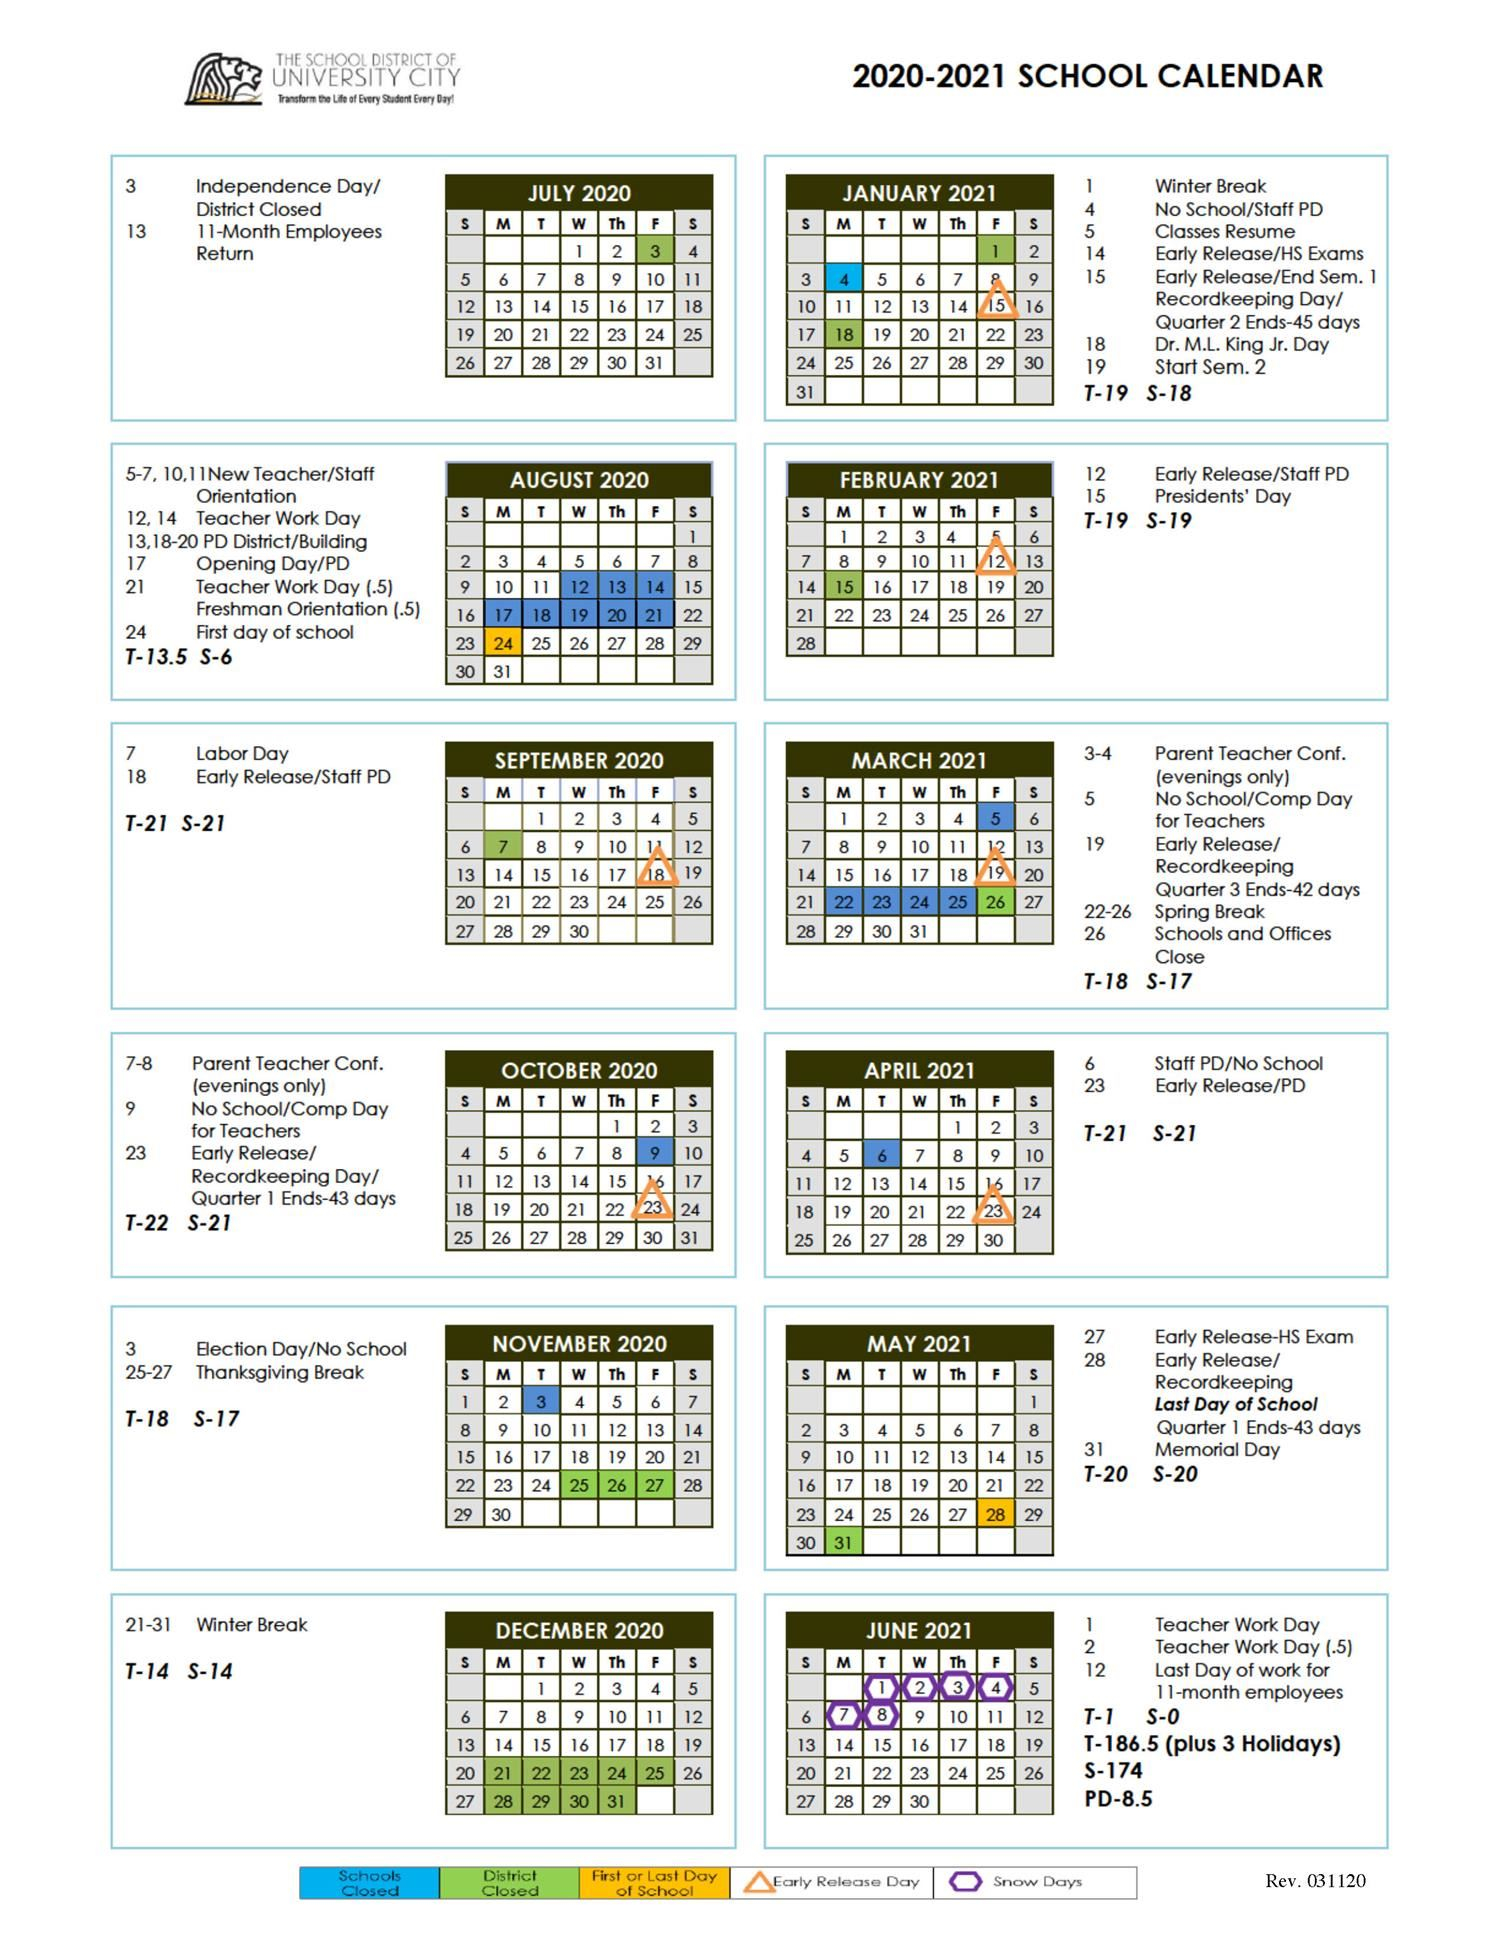 Revised 2020 21 School Year Calendar Now Available Intended For Saint Charles Communty College Calendar 2020